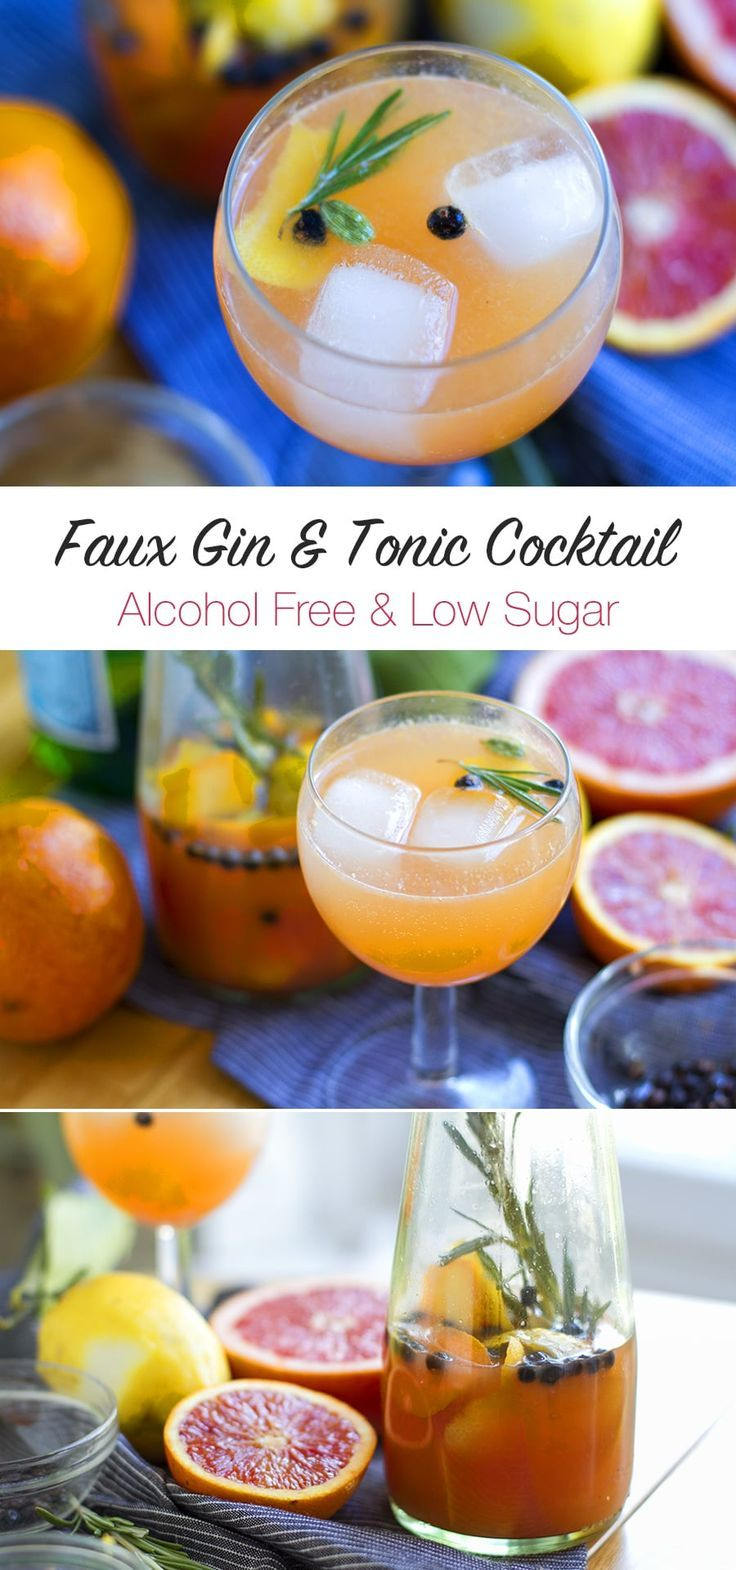 Delicious and refreshing non alcoholic drink inspired by a gin and tonic. This is homemade, low sugar with no additives. Hits the spot! Recipe: eatdrinkpaleo.com...